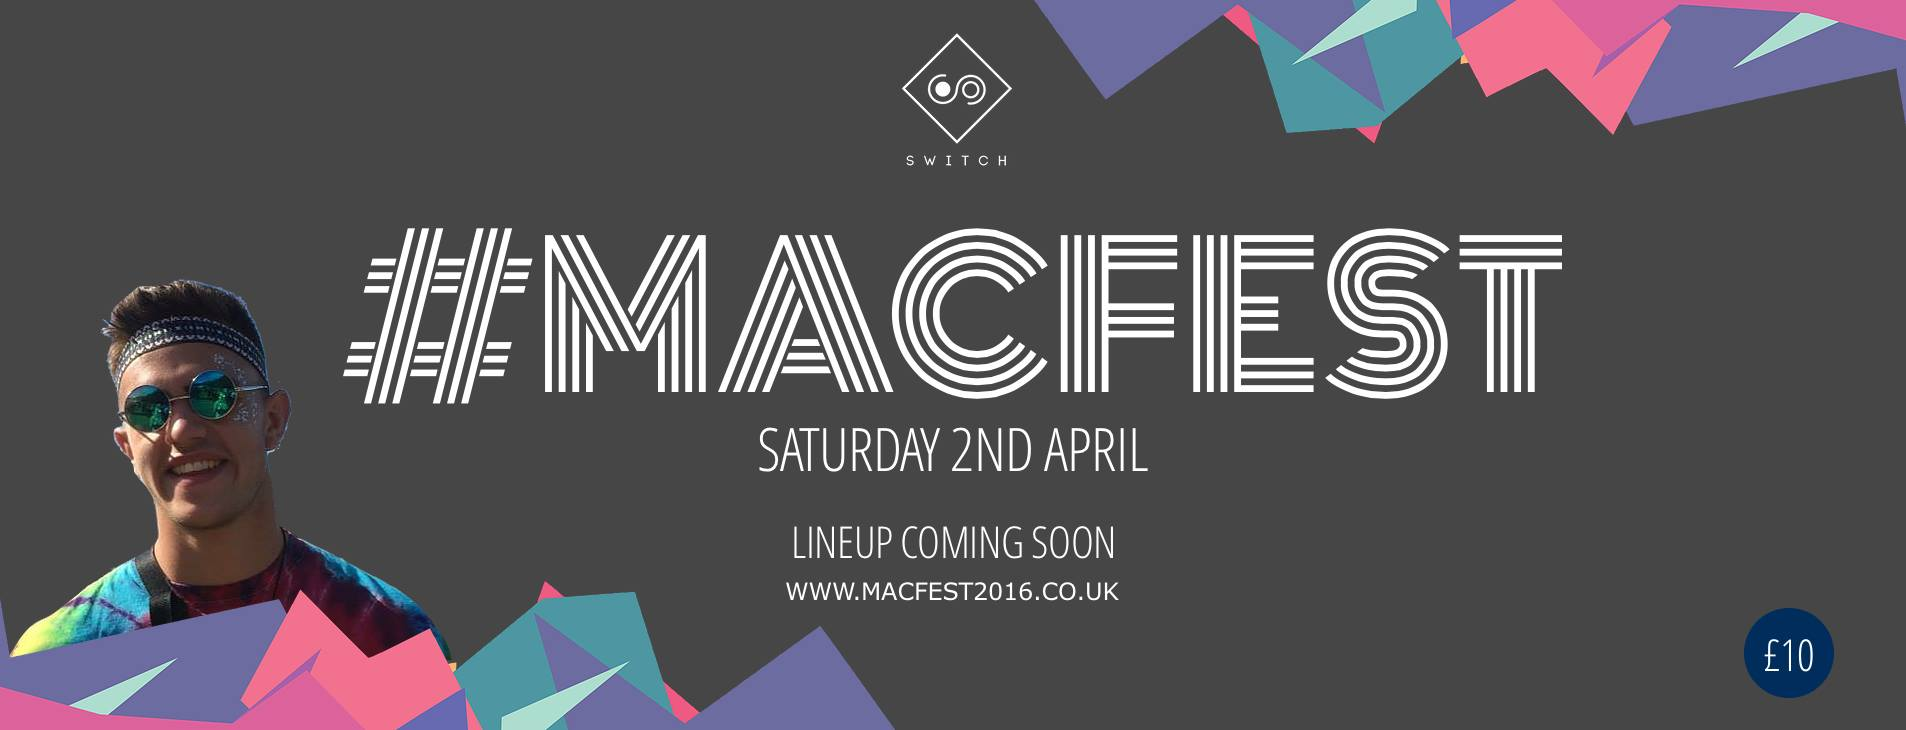 #MACFEST2016 Tickets on sale now!